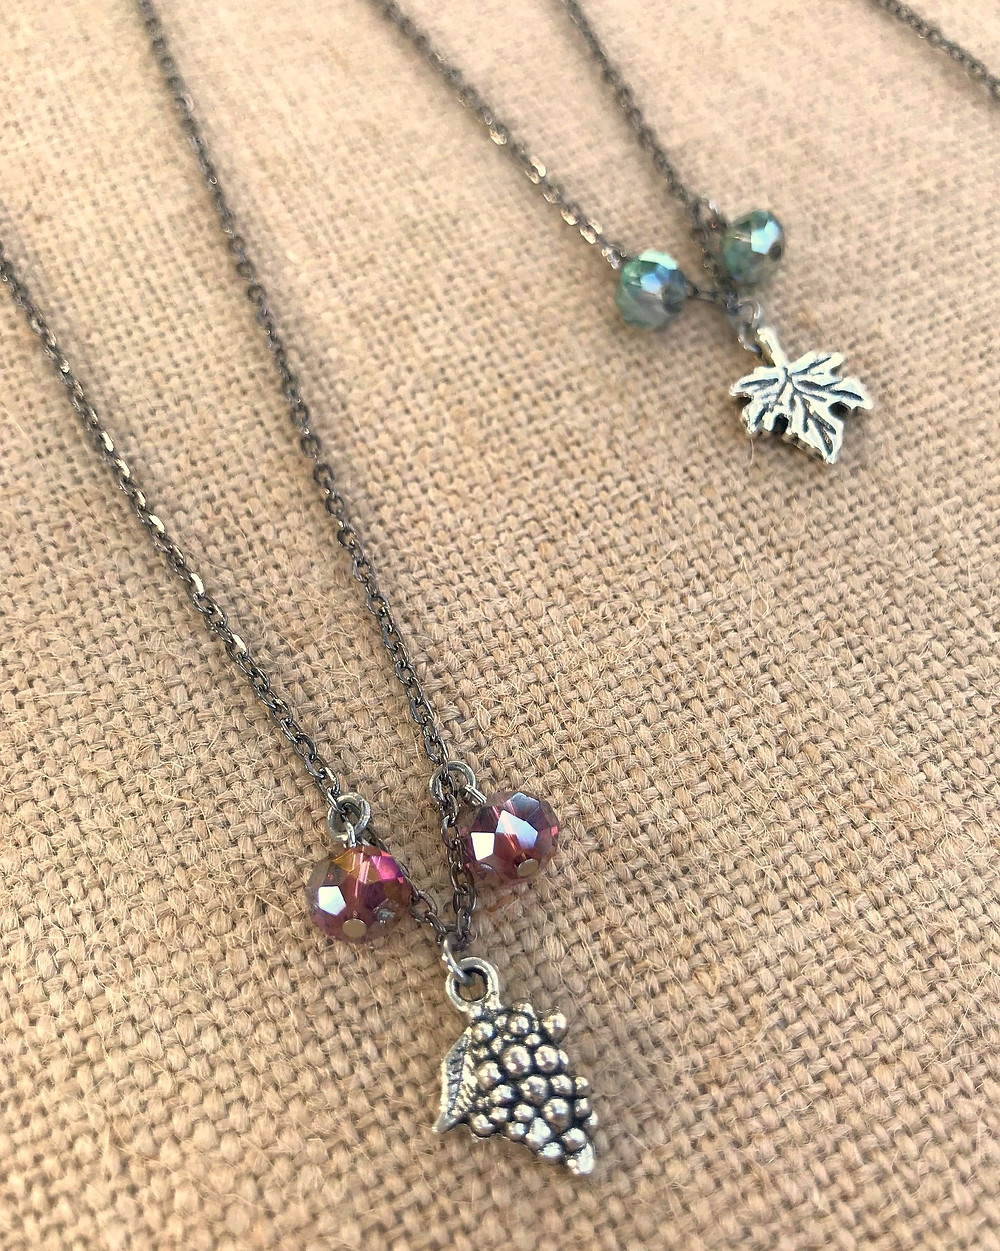 Two styles of new charm necklaces, crystal necklaces, crystal pendant necklace, fashion jewelry necklaces that make great gifts for wine lovers